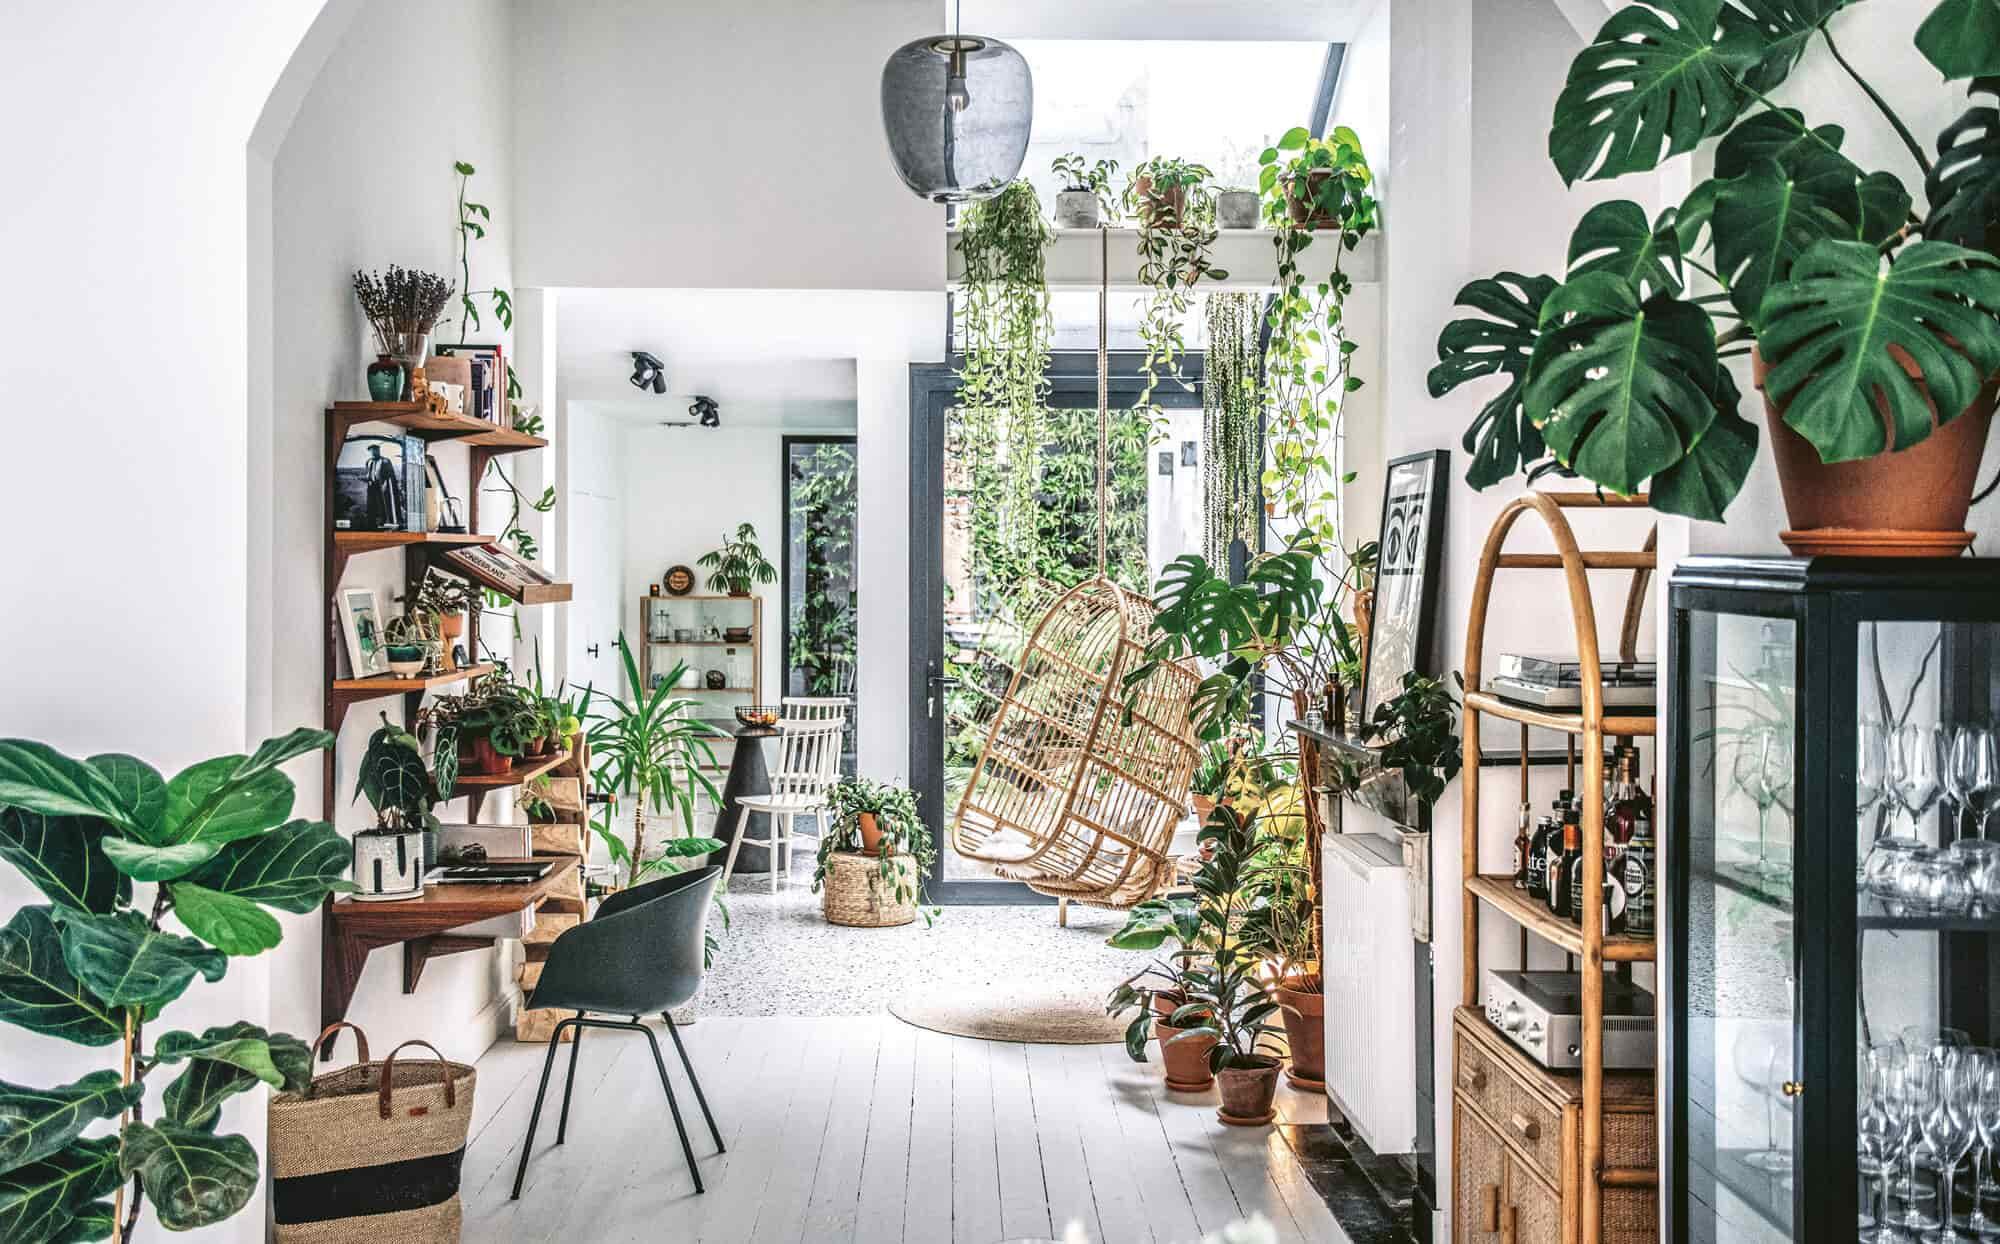 Decorating the Interior with Potted Plants